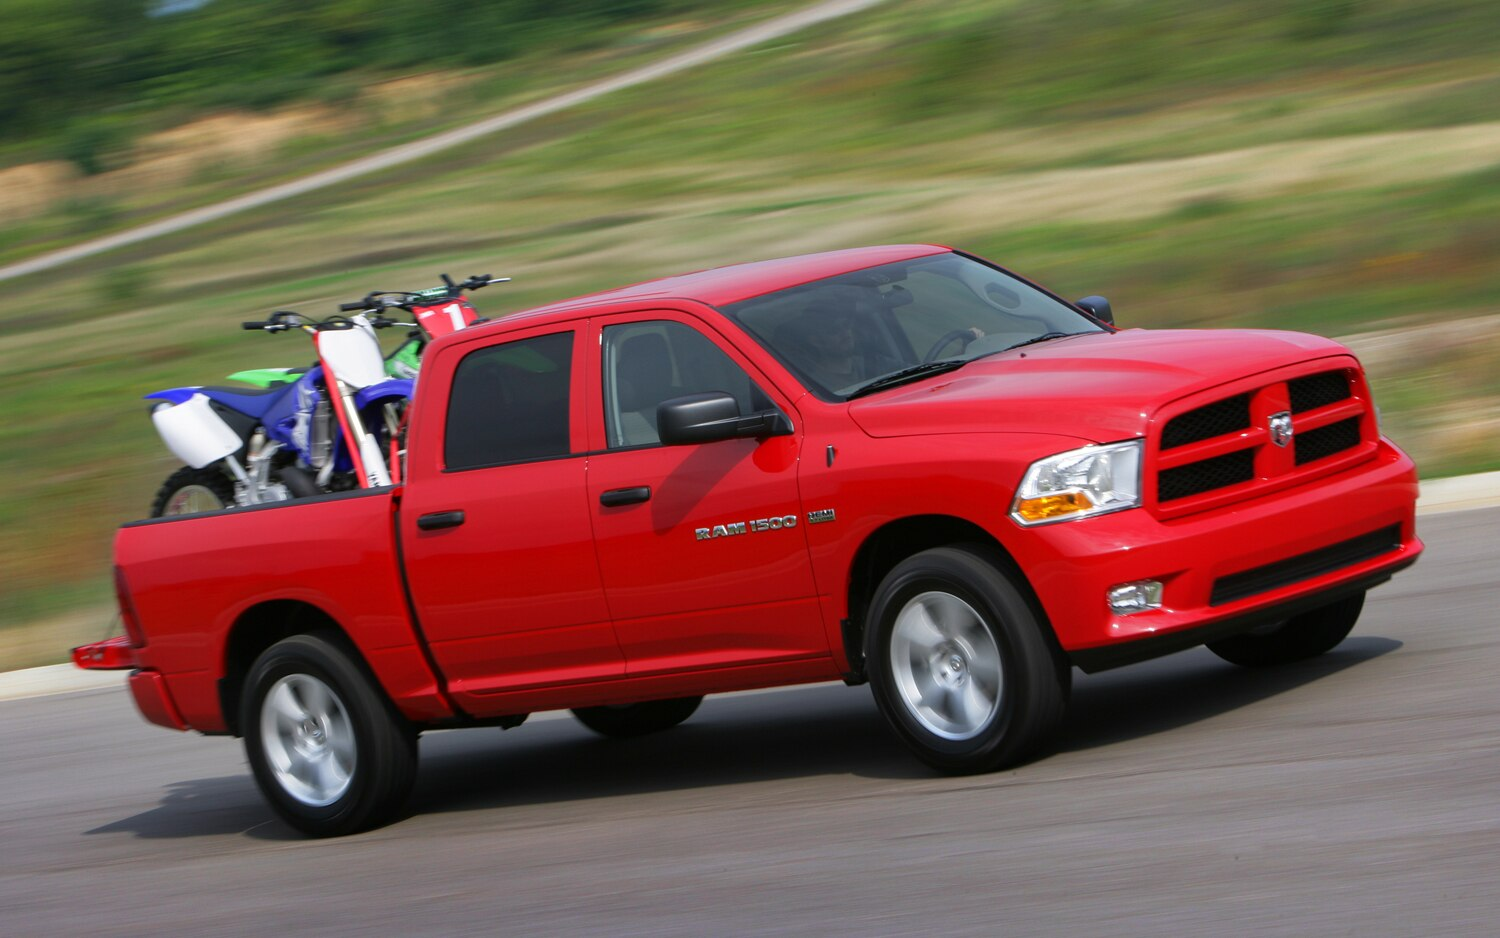 Ram 1500 Tradesman HD Loaded With Motorcycles1